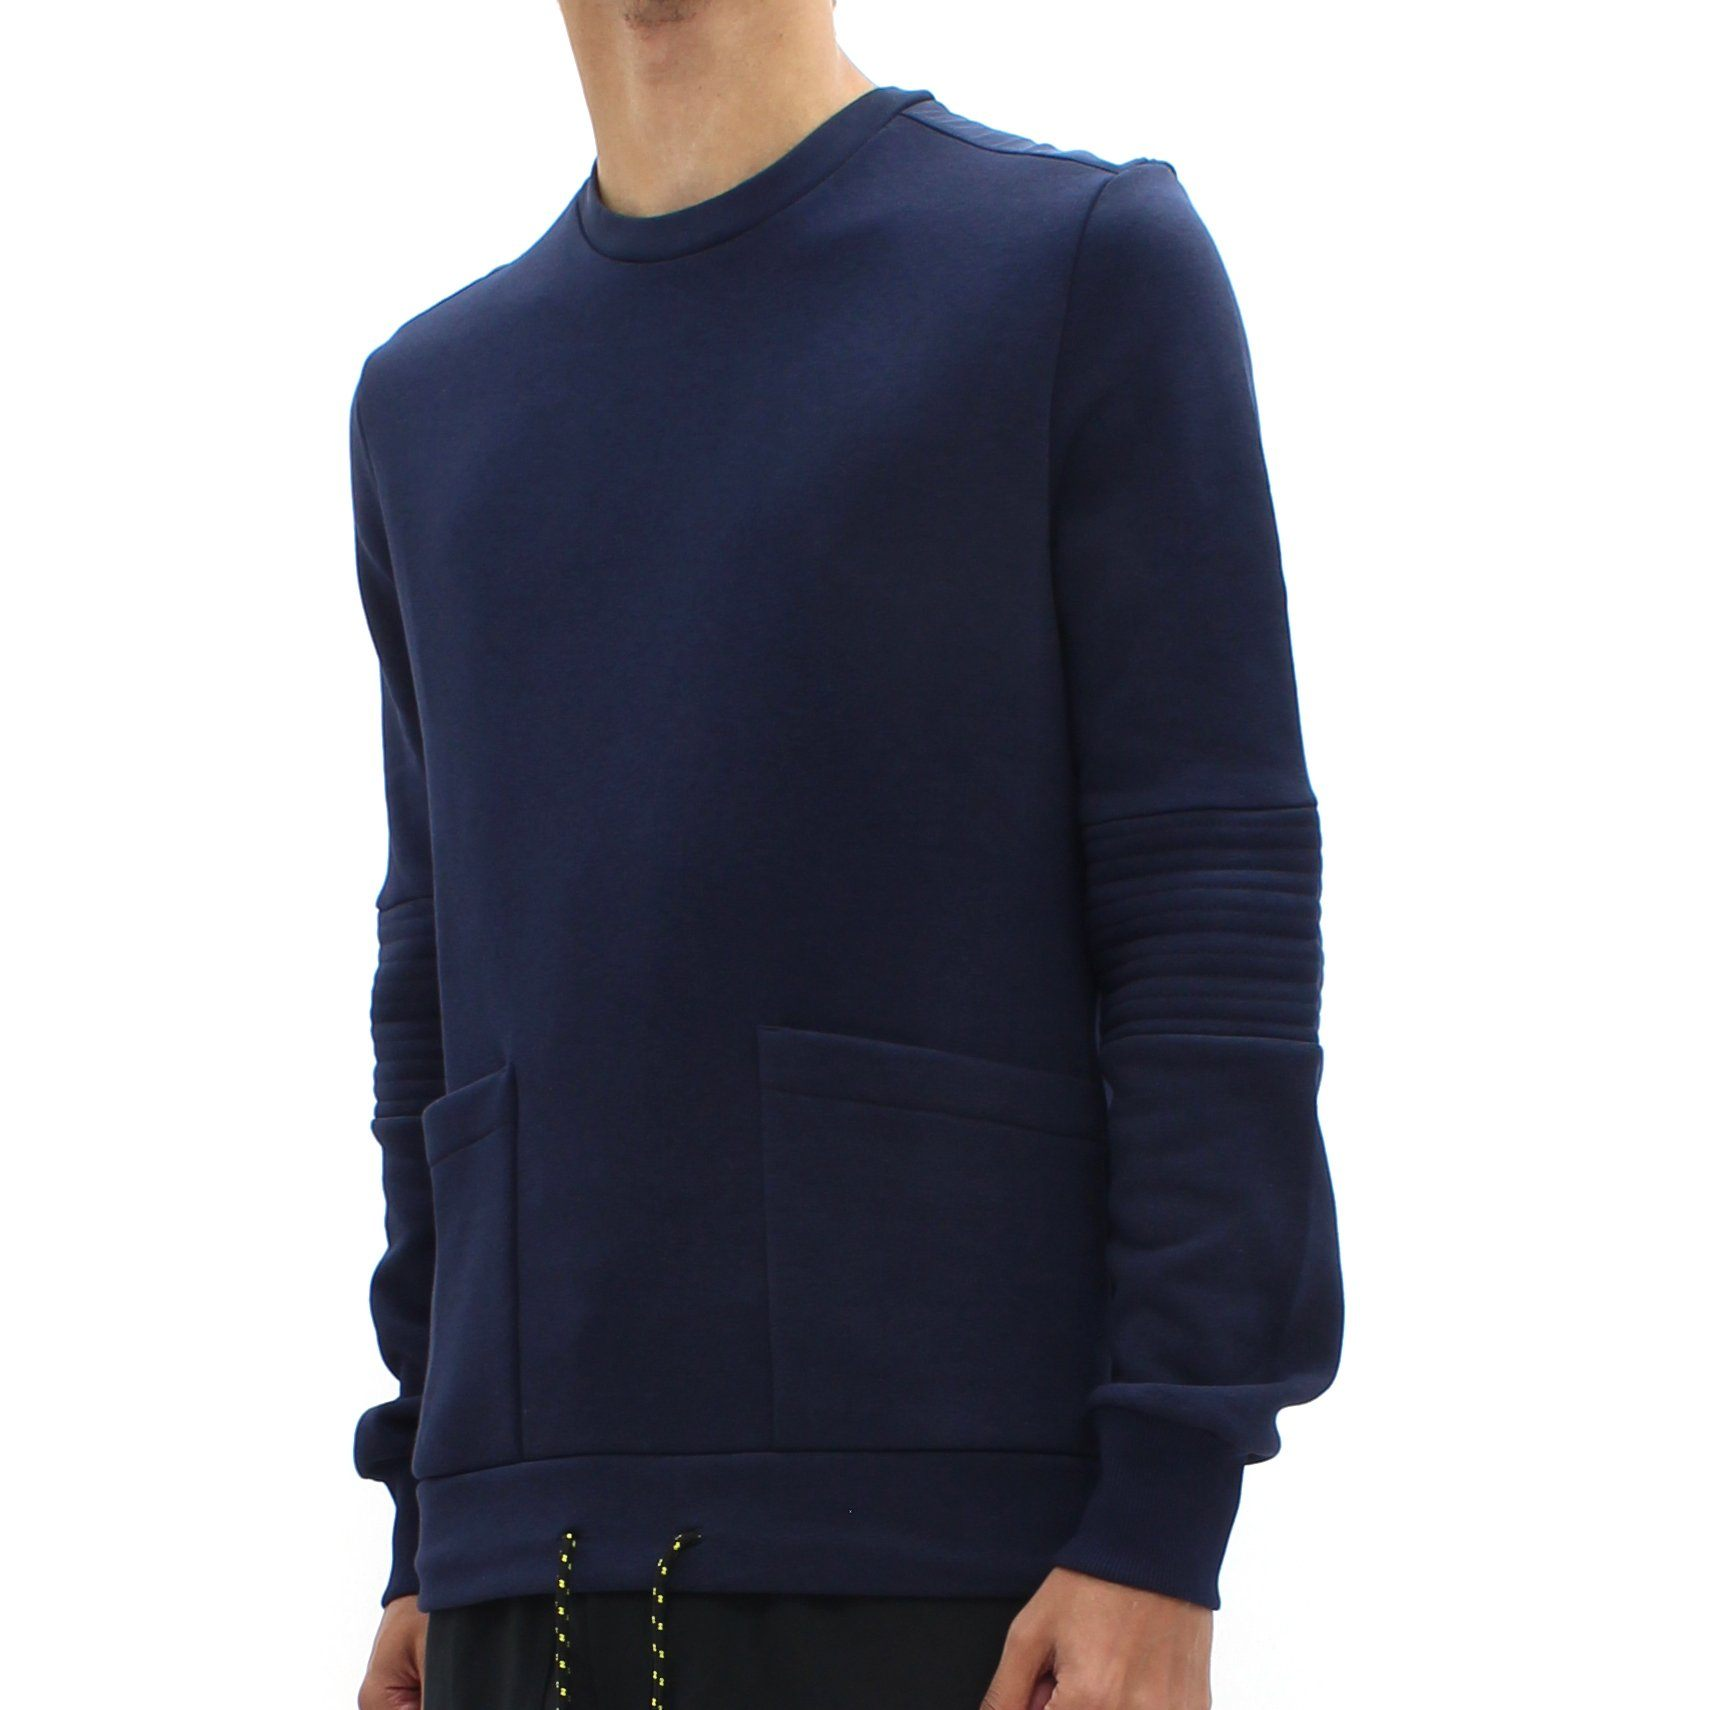 Low Brand Draw String Sweatshirt Blue